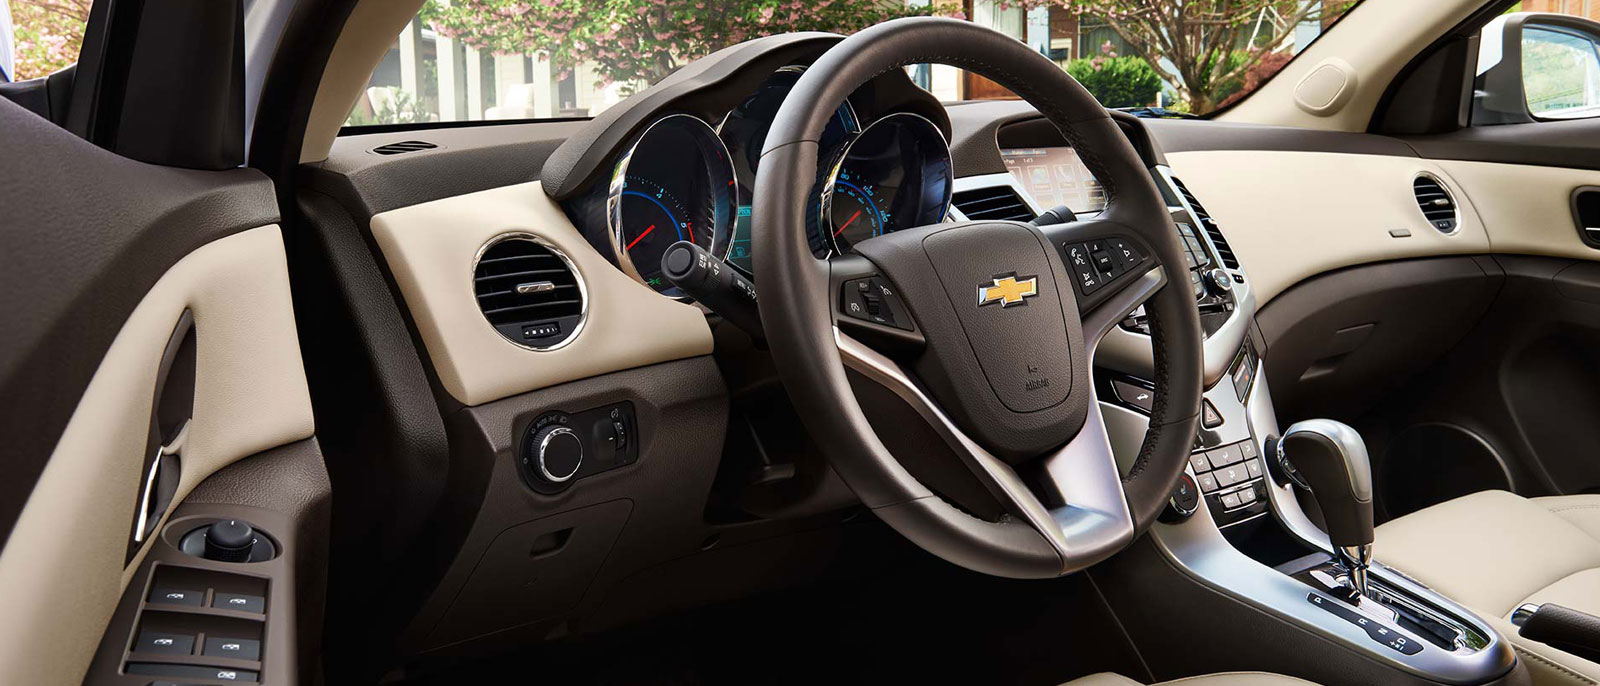 2015 Chevy Cruze interior